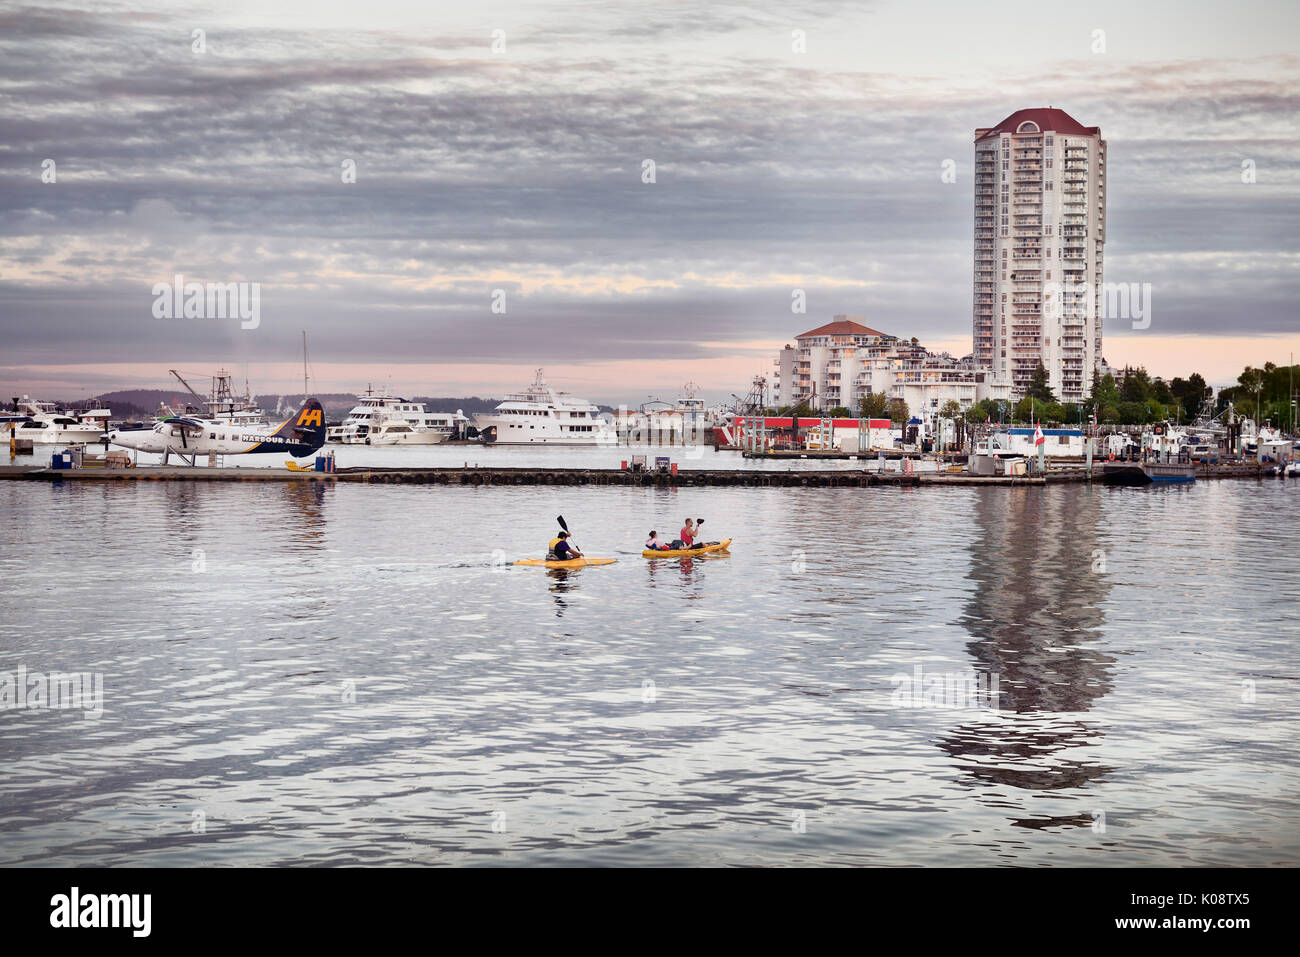 Scenery of people kayaking at Nanaimo city waterfront in the eveninng with the harbour and the city skyline in the background. Vancouver Island, Briti - Stock Image